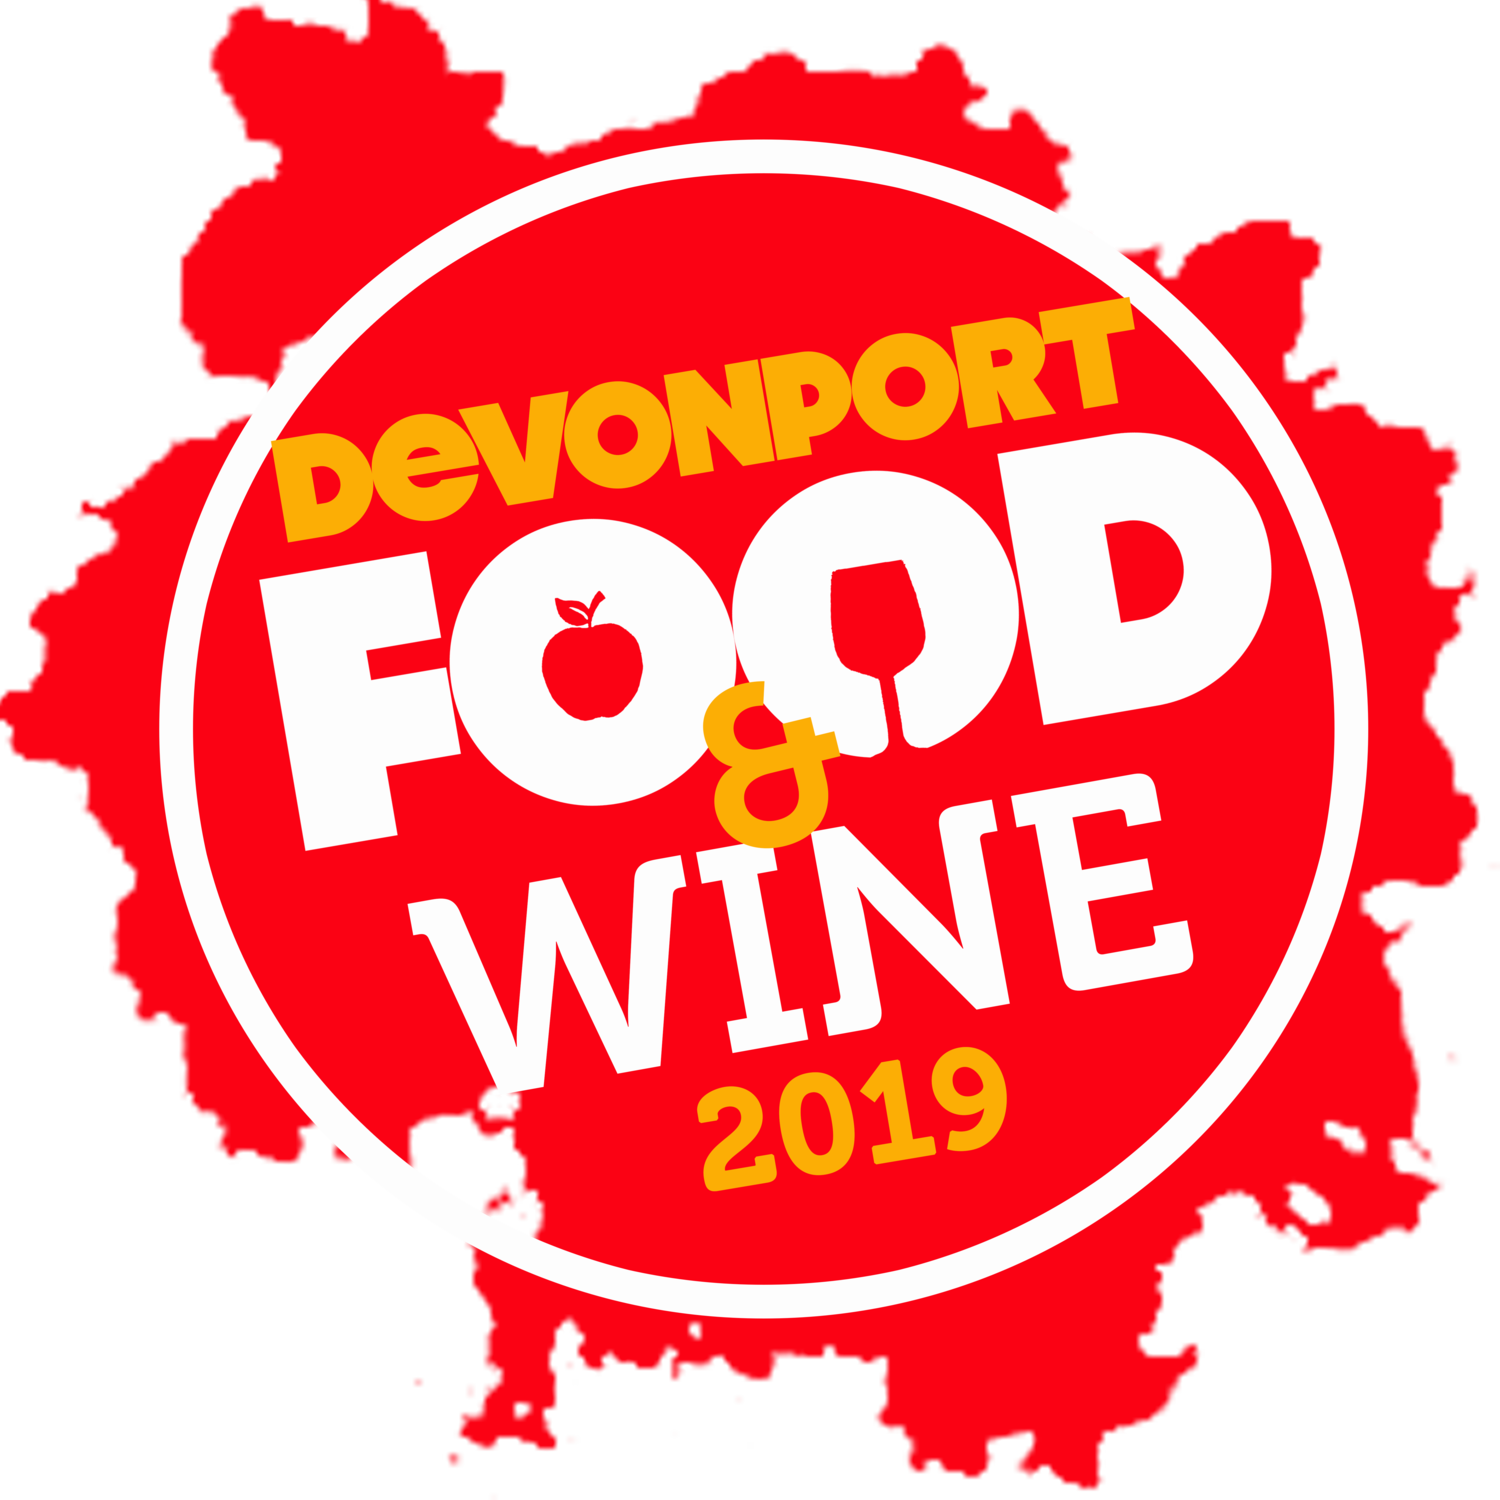 Devonport Food and Wine